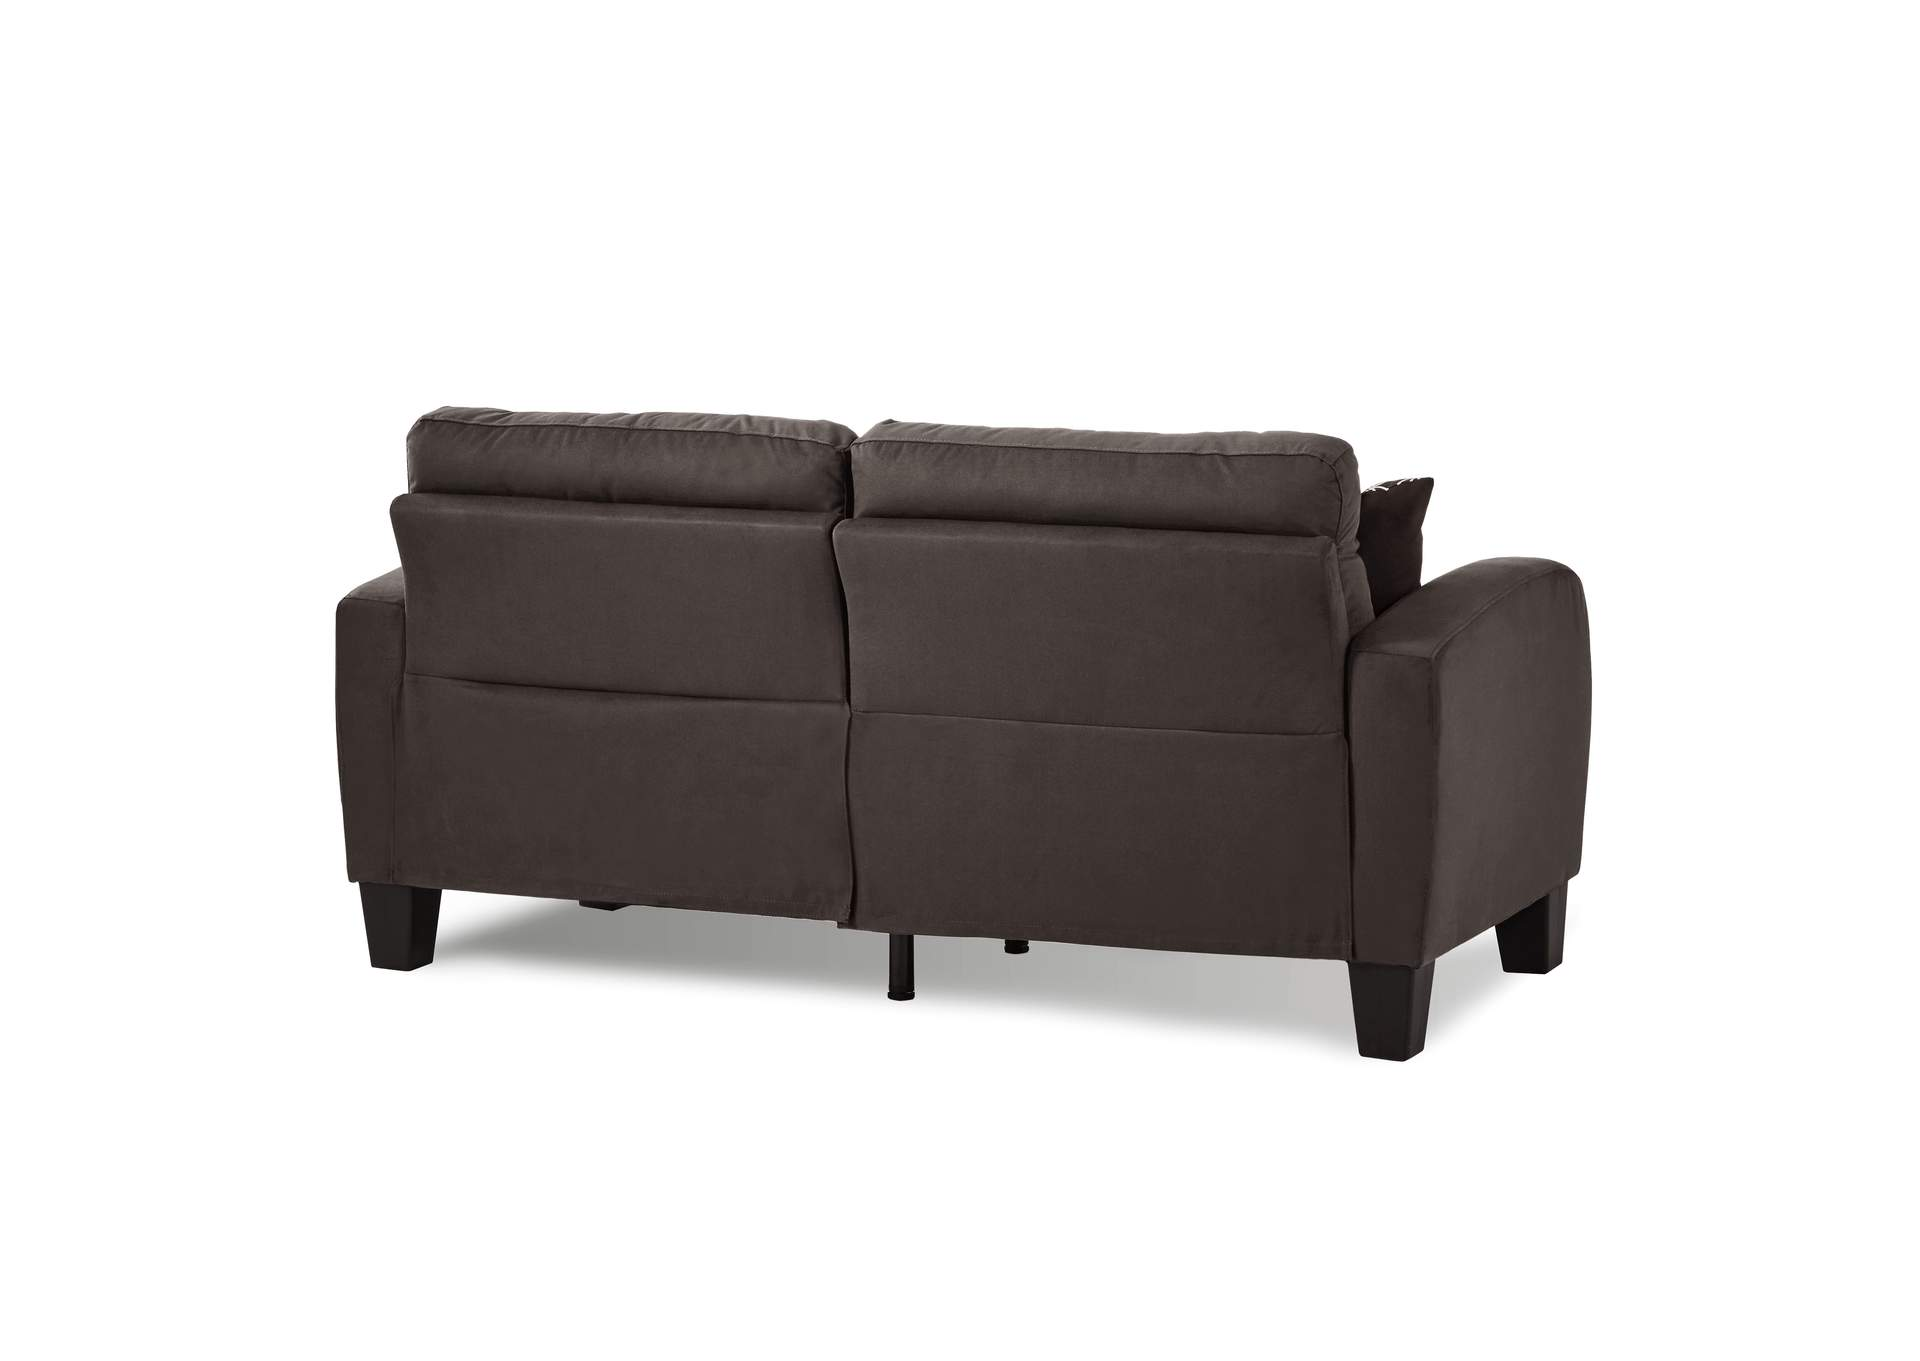 Chocolate Sofa,Homelegance